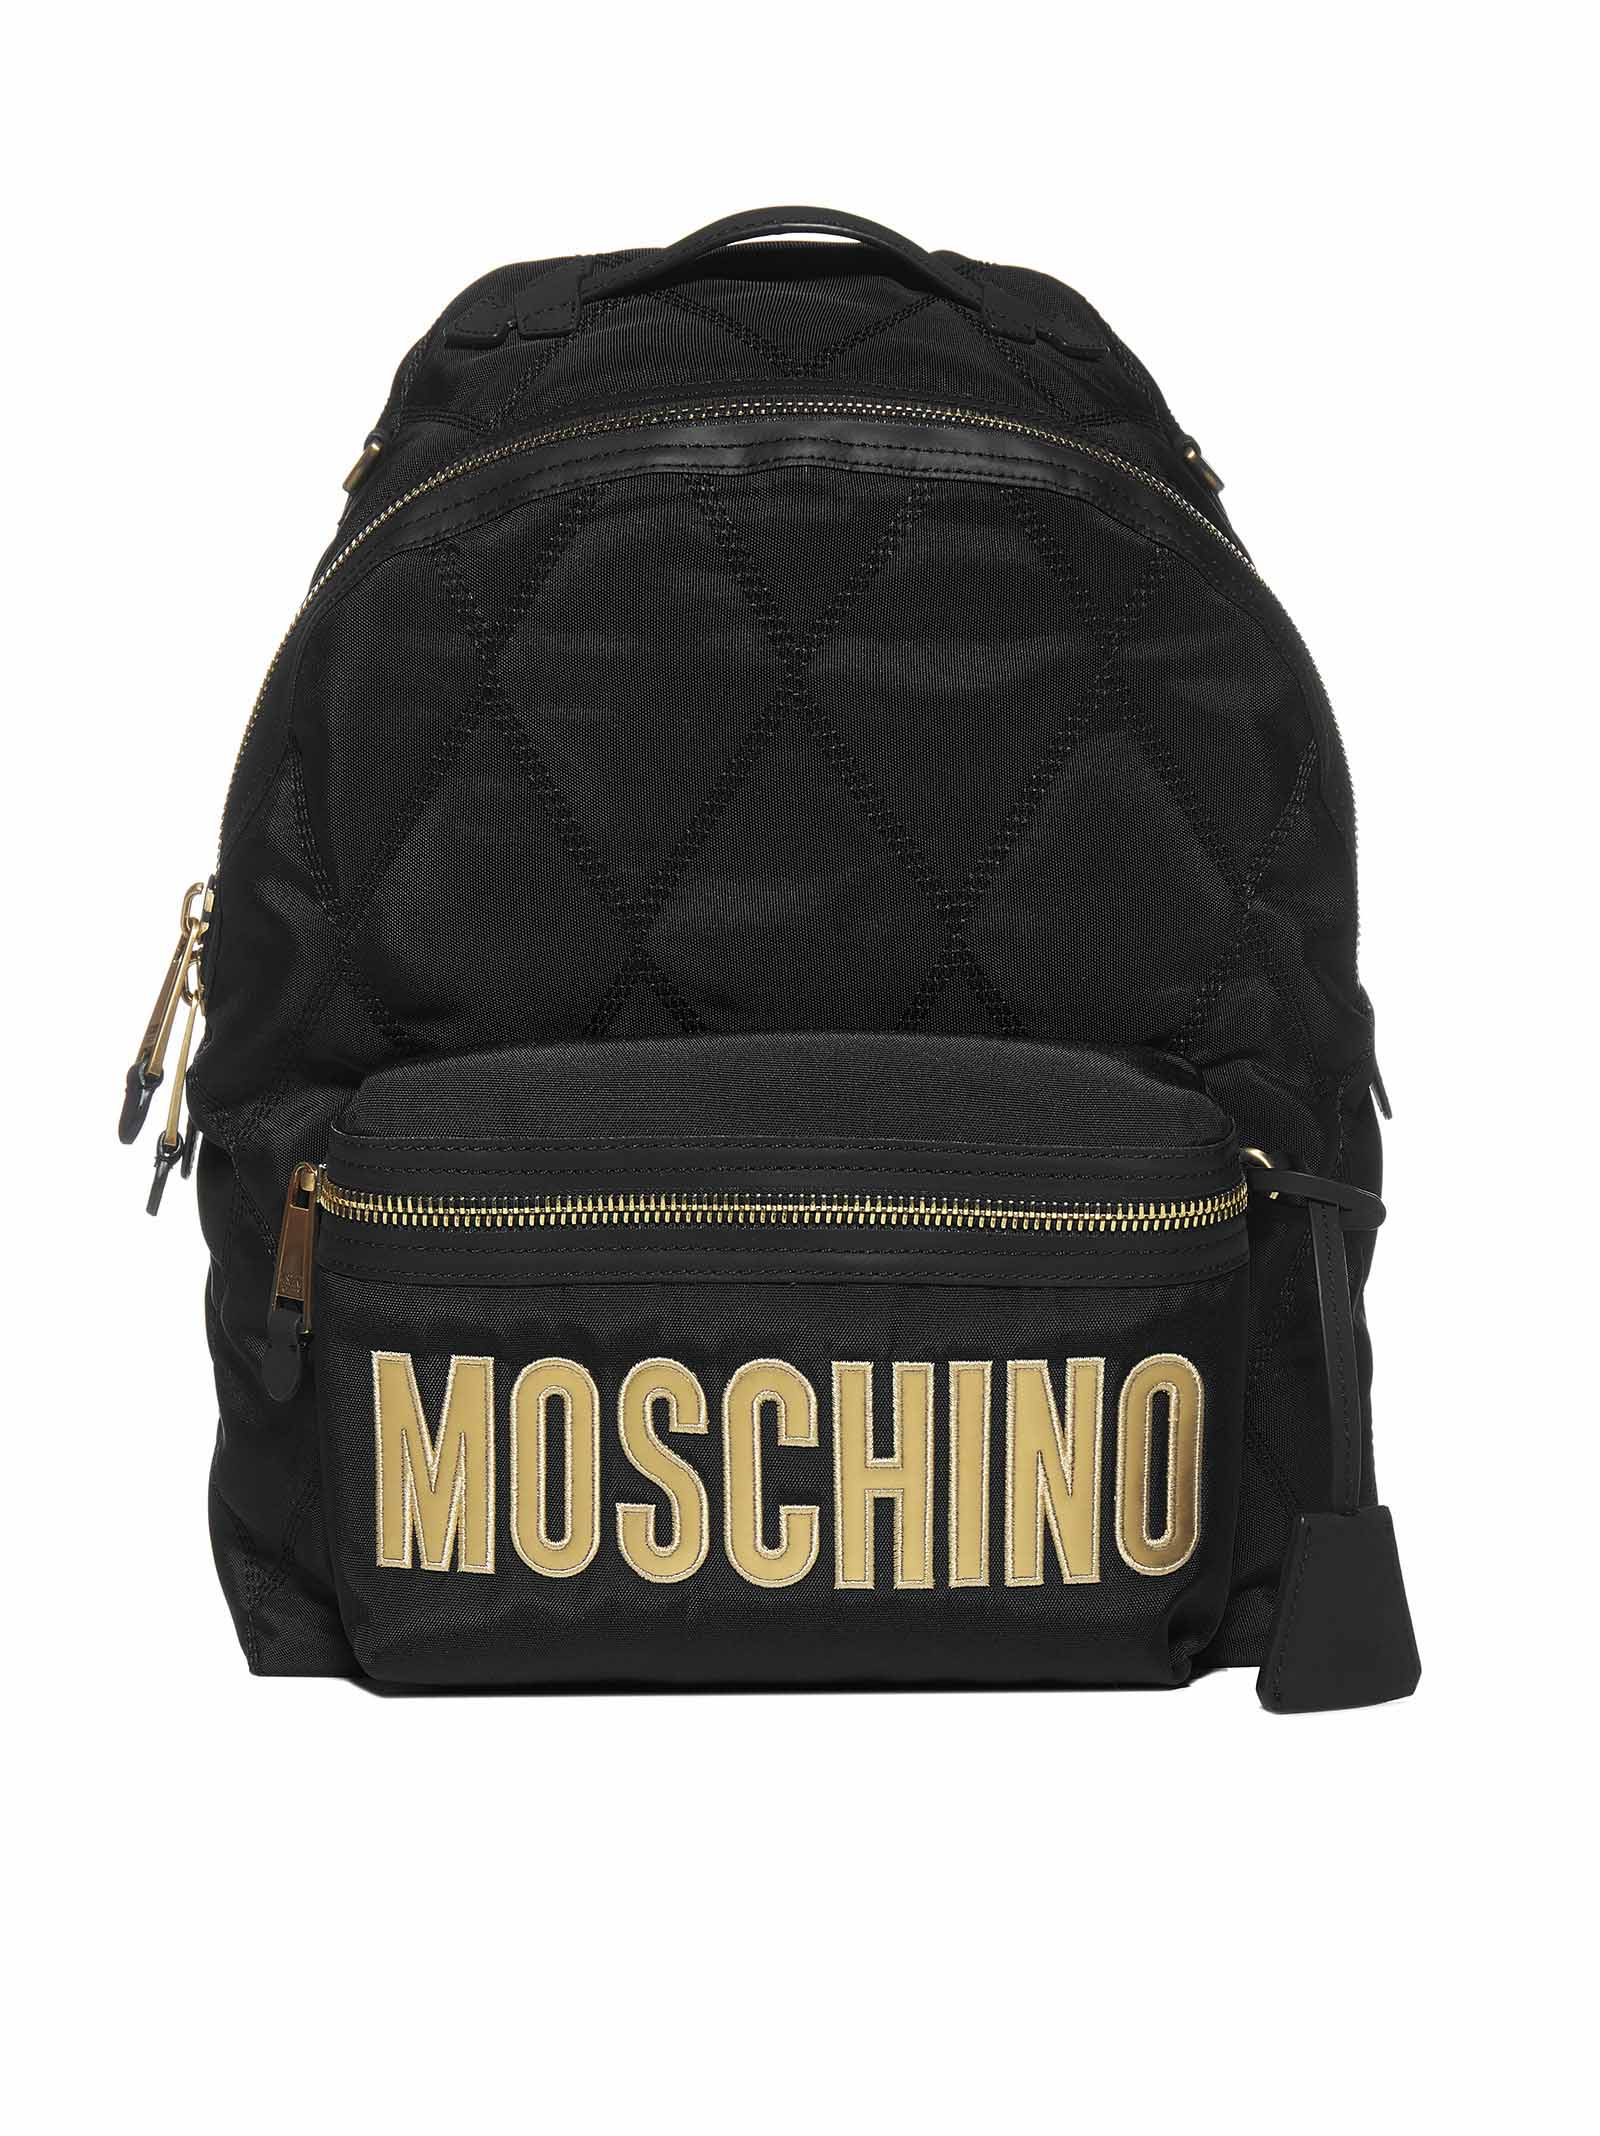 Moschino Backpacks MOSCHINO LOGO QUILTED BACKPACK